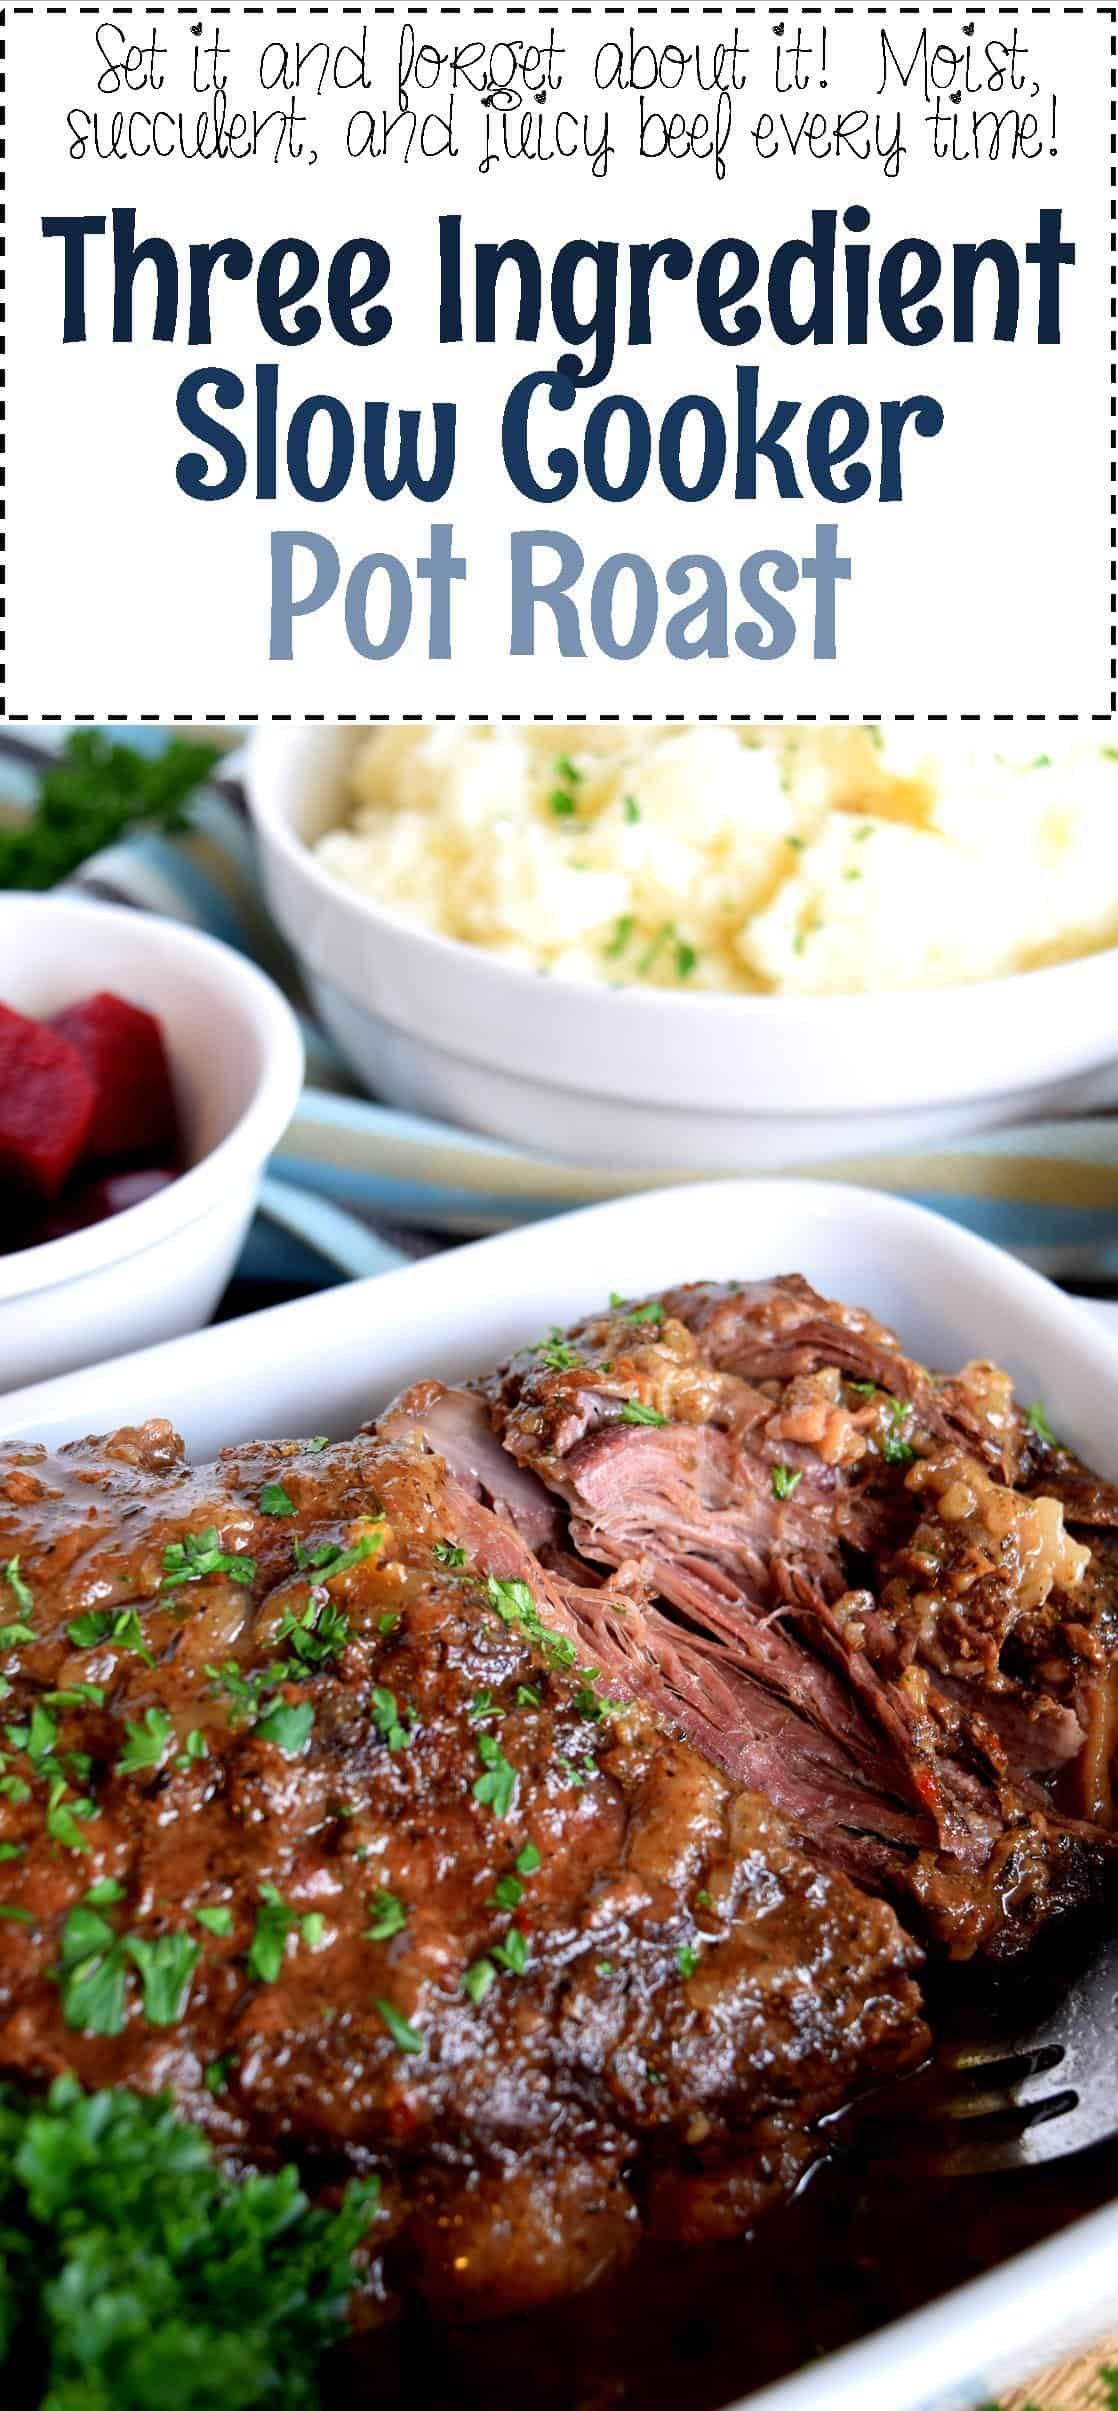 Three ingredient slow cooker pot roast lord byron 39 s kitchen for Hamilton beach pioneer woman slow cooker